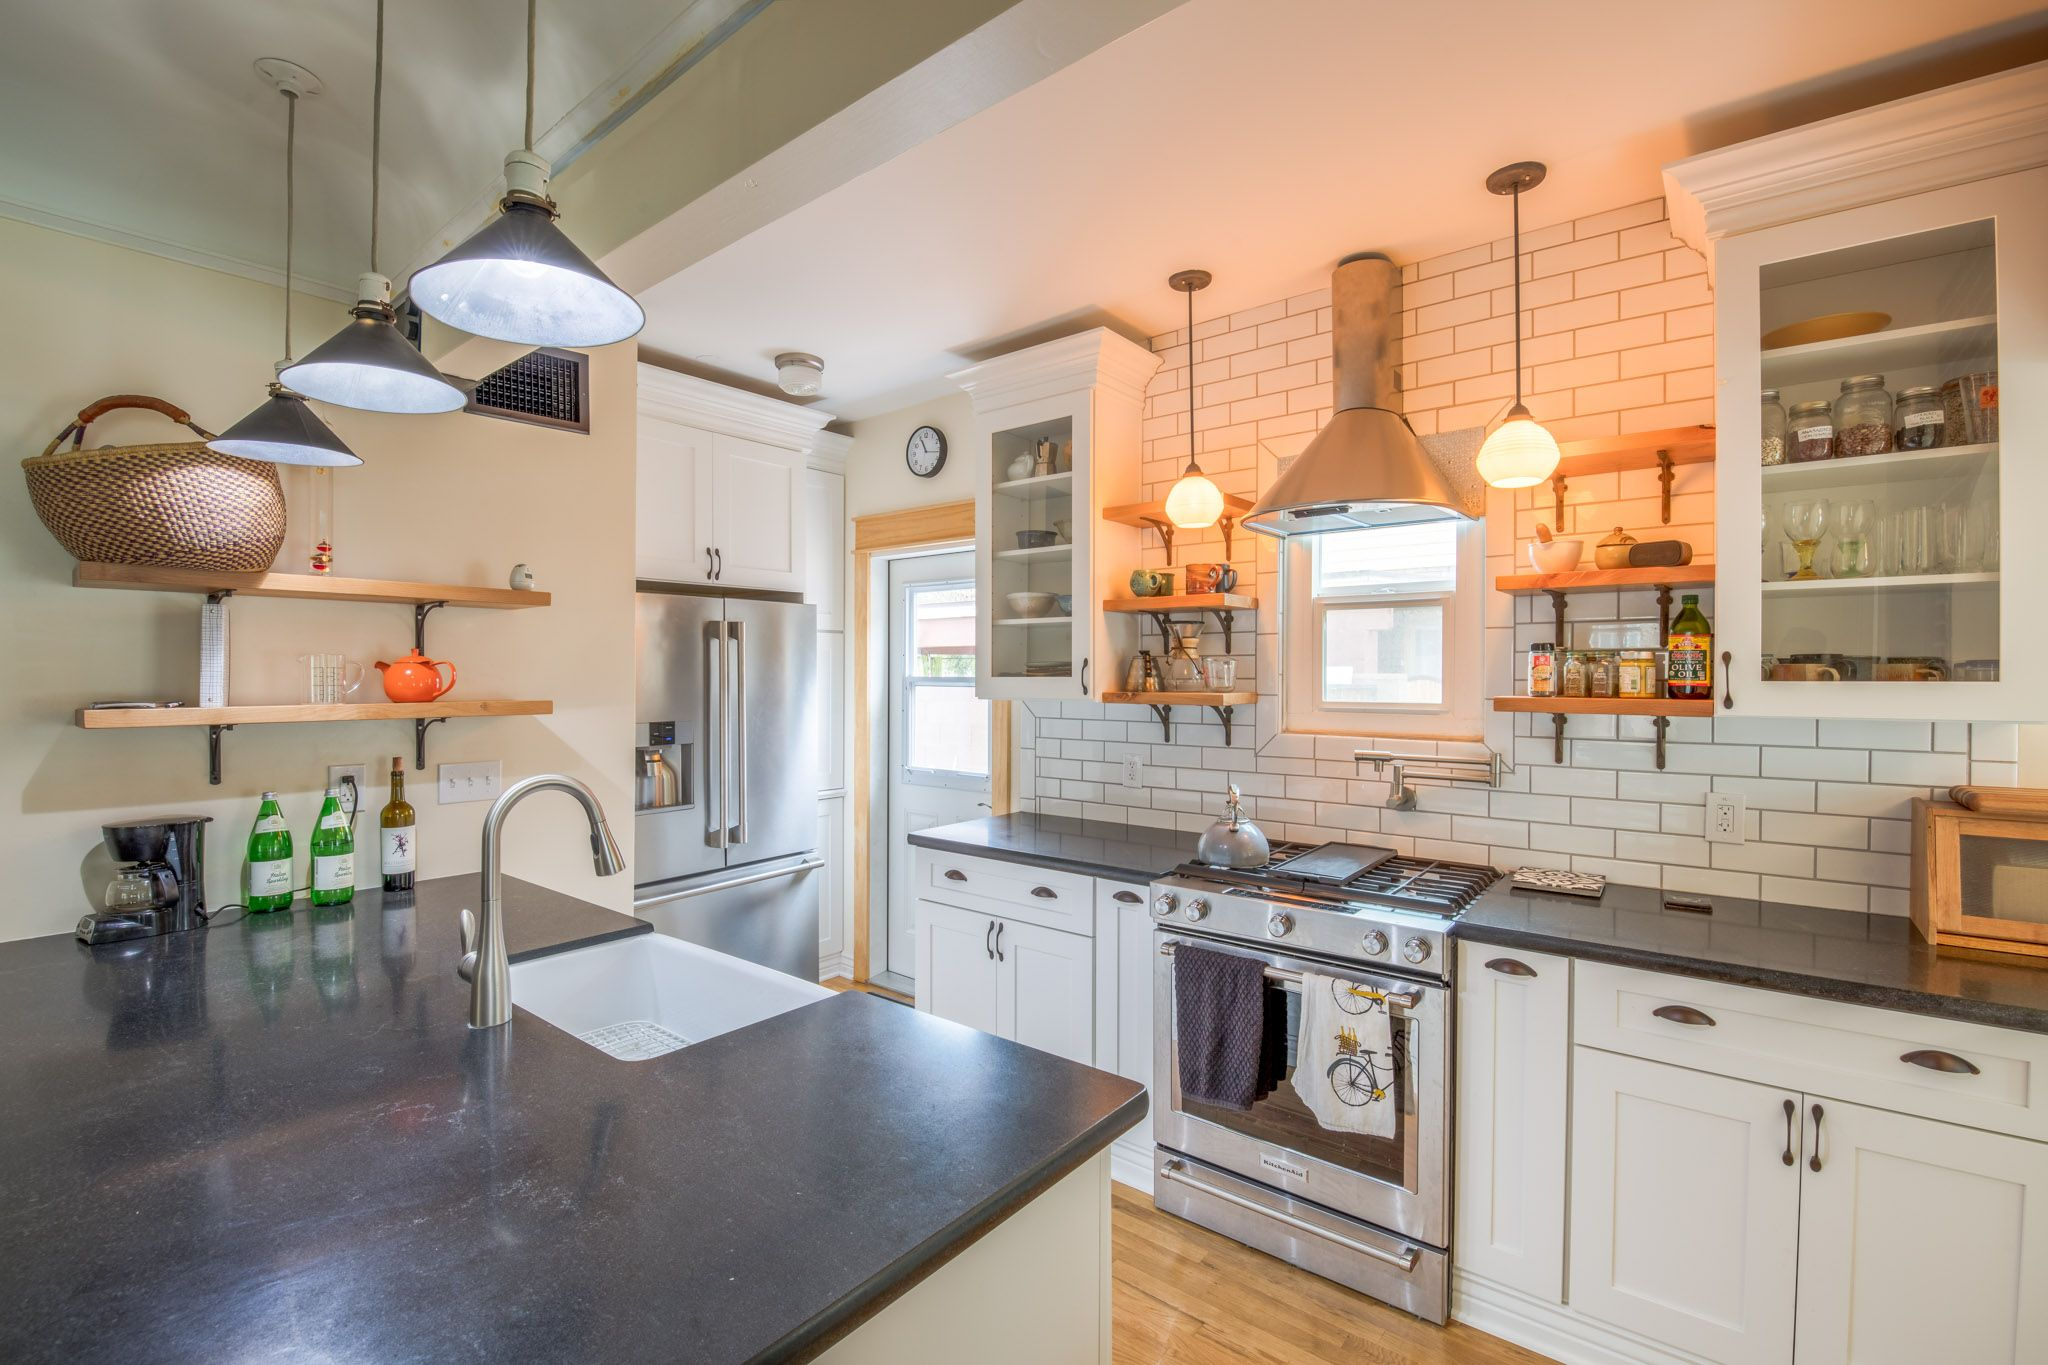 Beautiful white shaker kitchen with open shelving tiled wall and